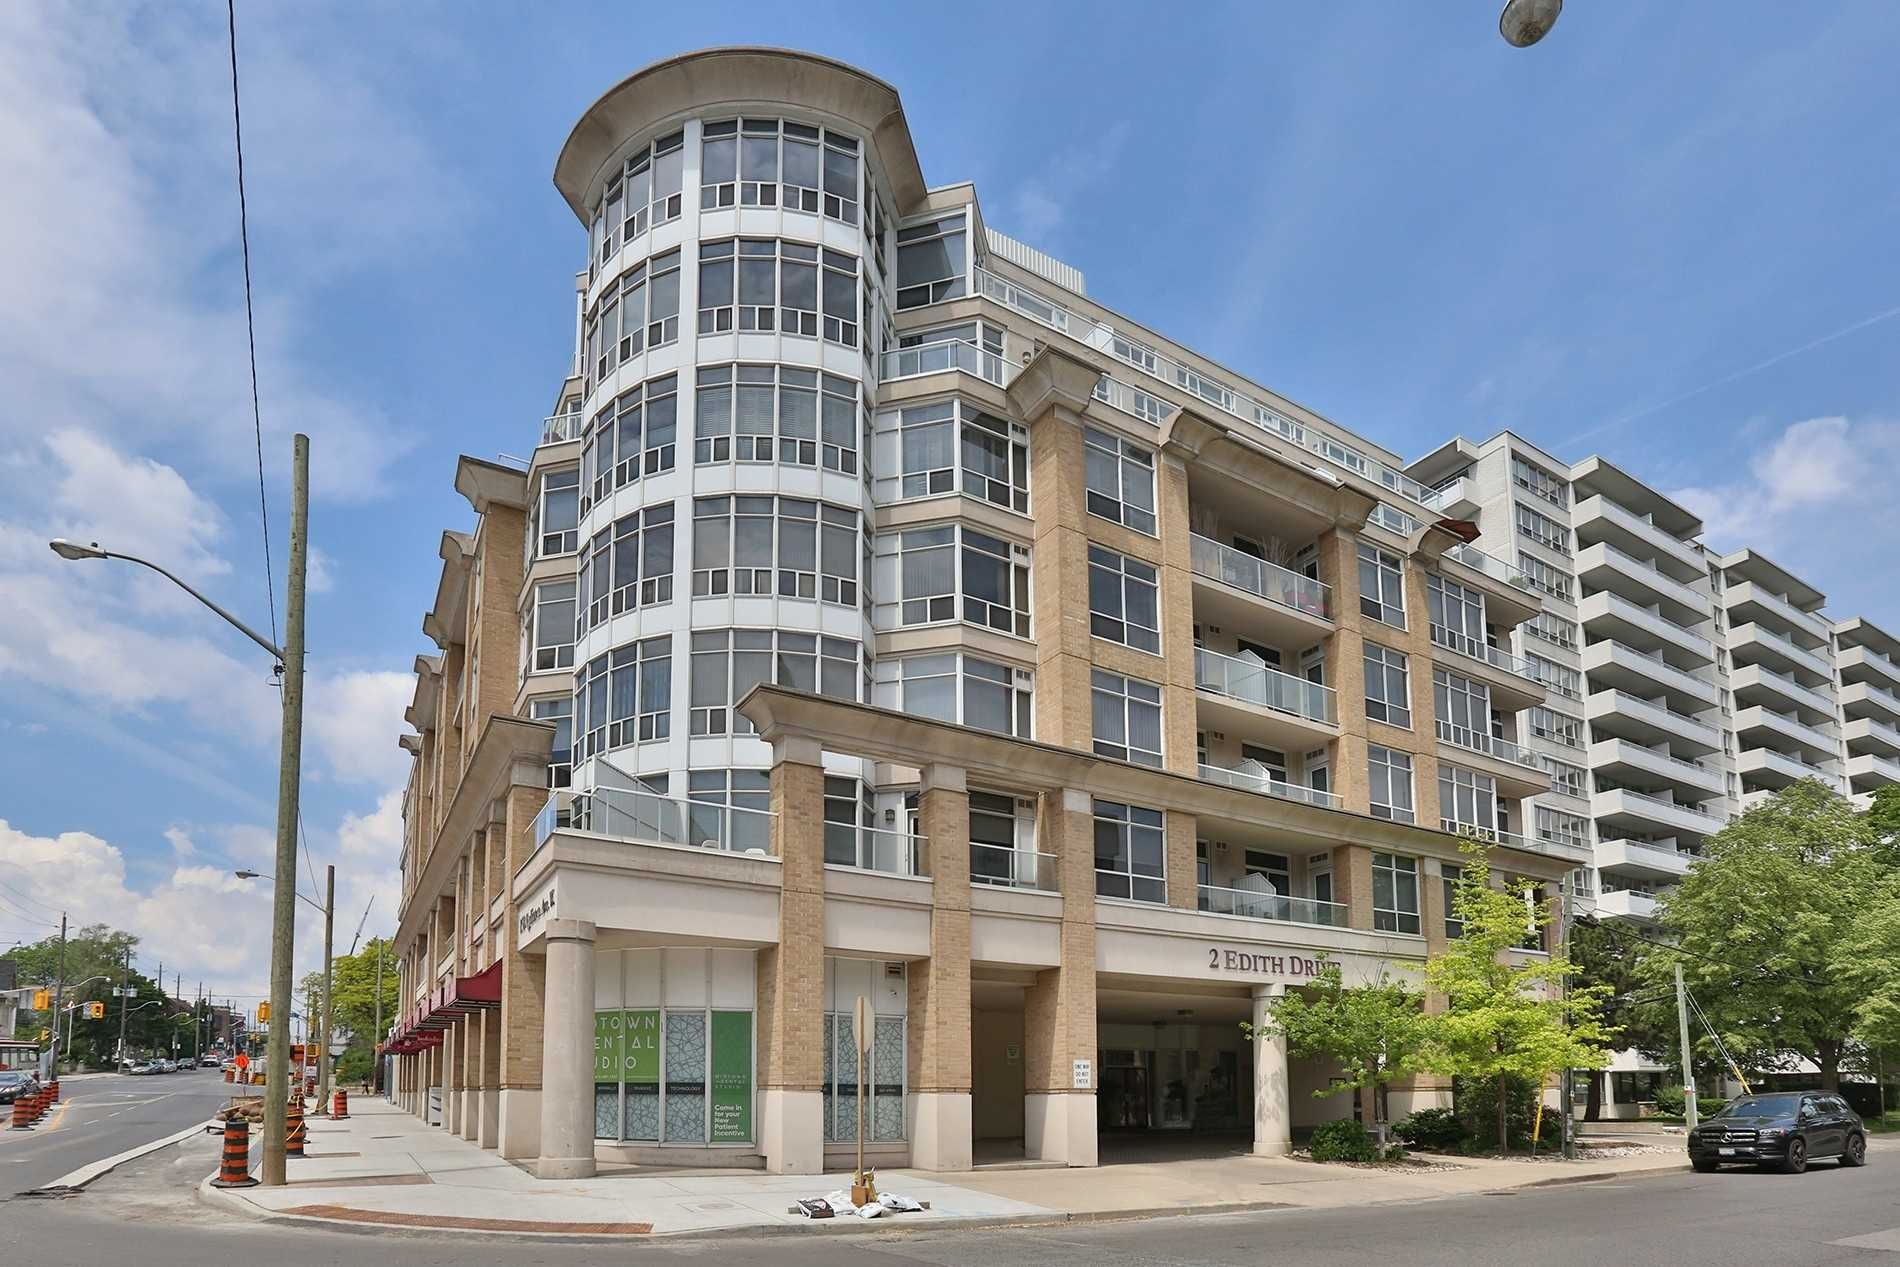 2 Edith Dr, unit 407 for sale in Toronto - image #1